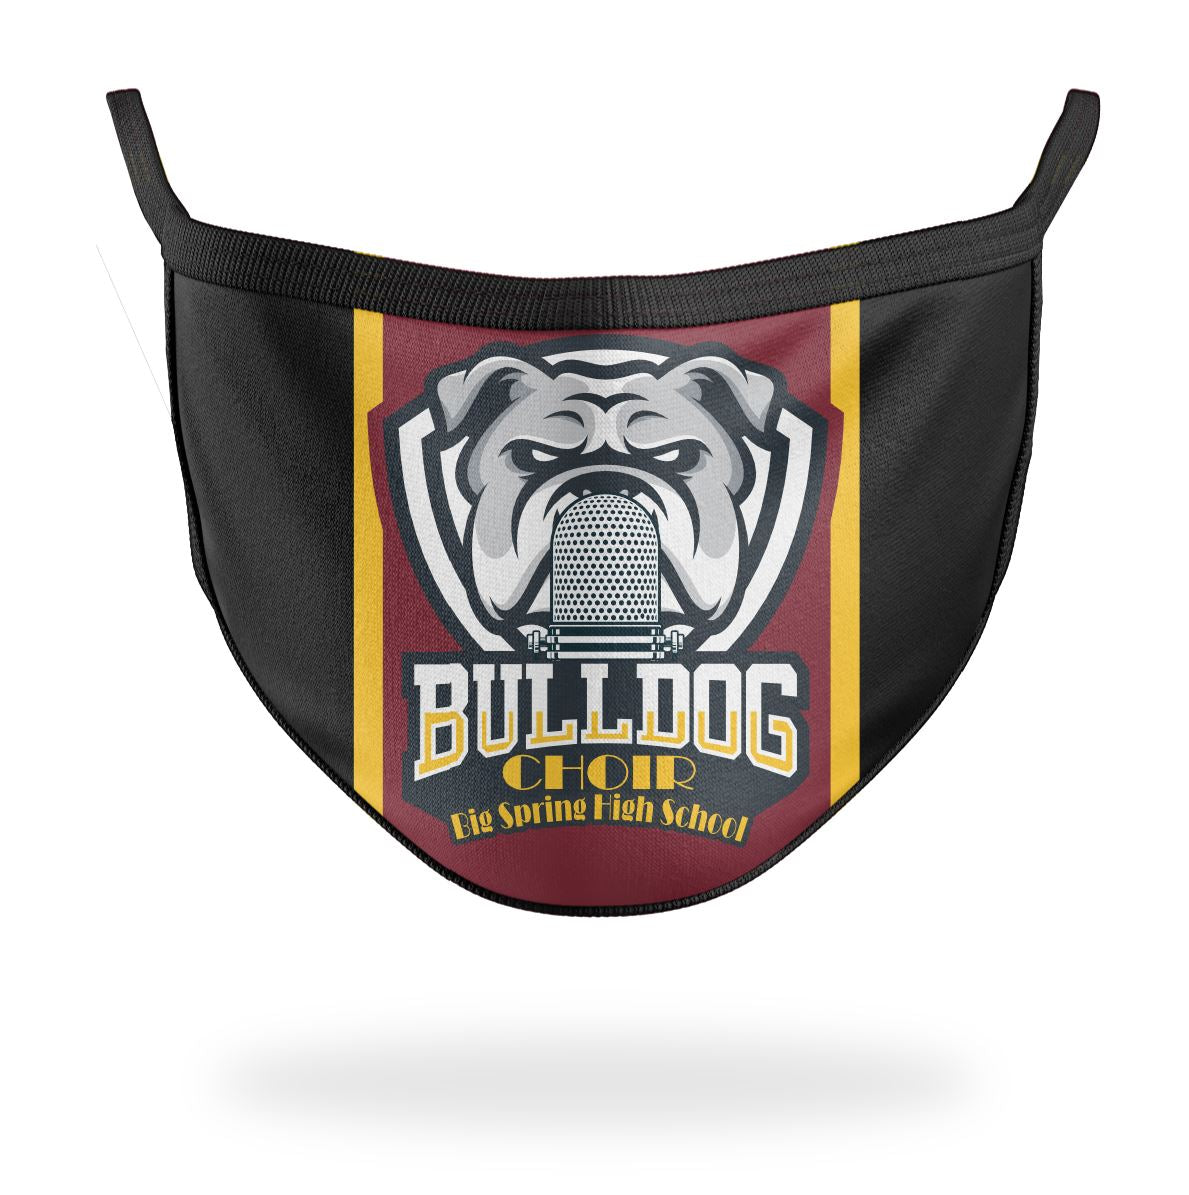 Bulldog Choir Mask